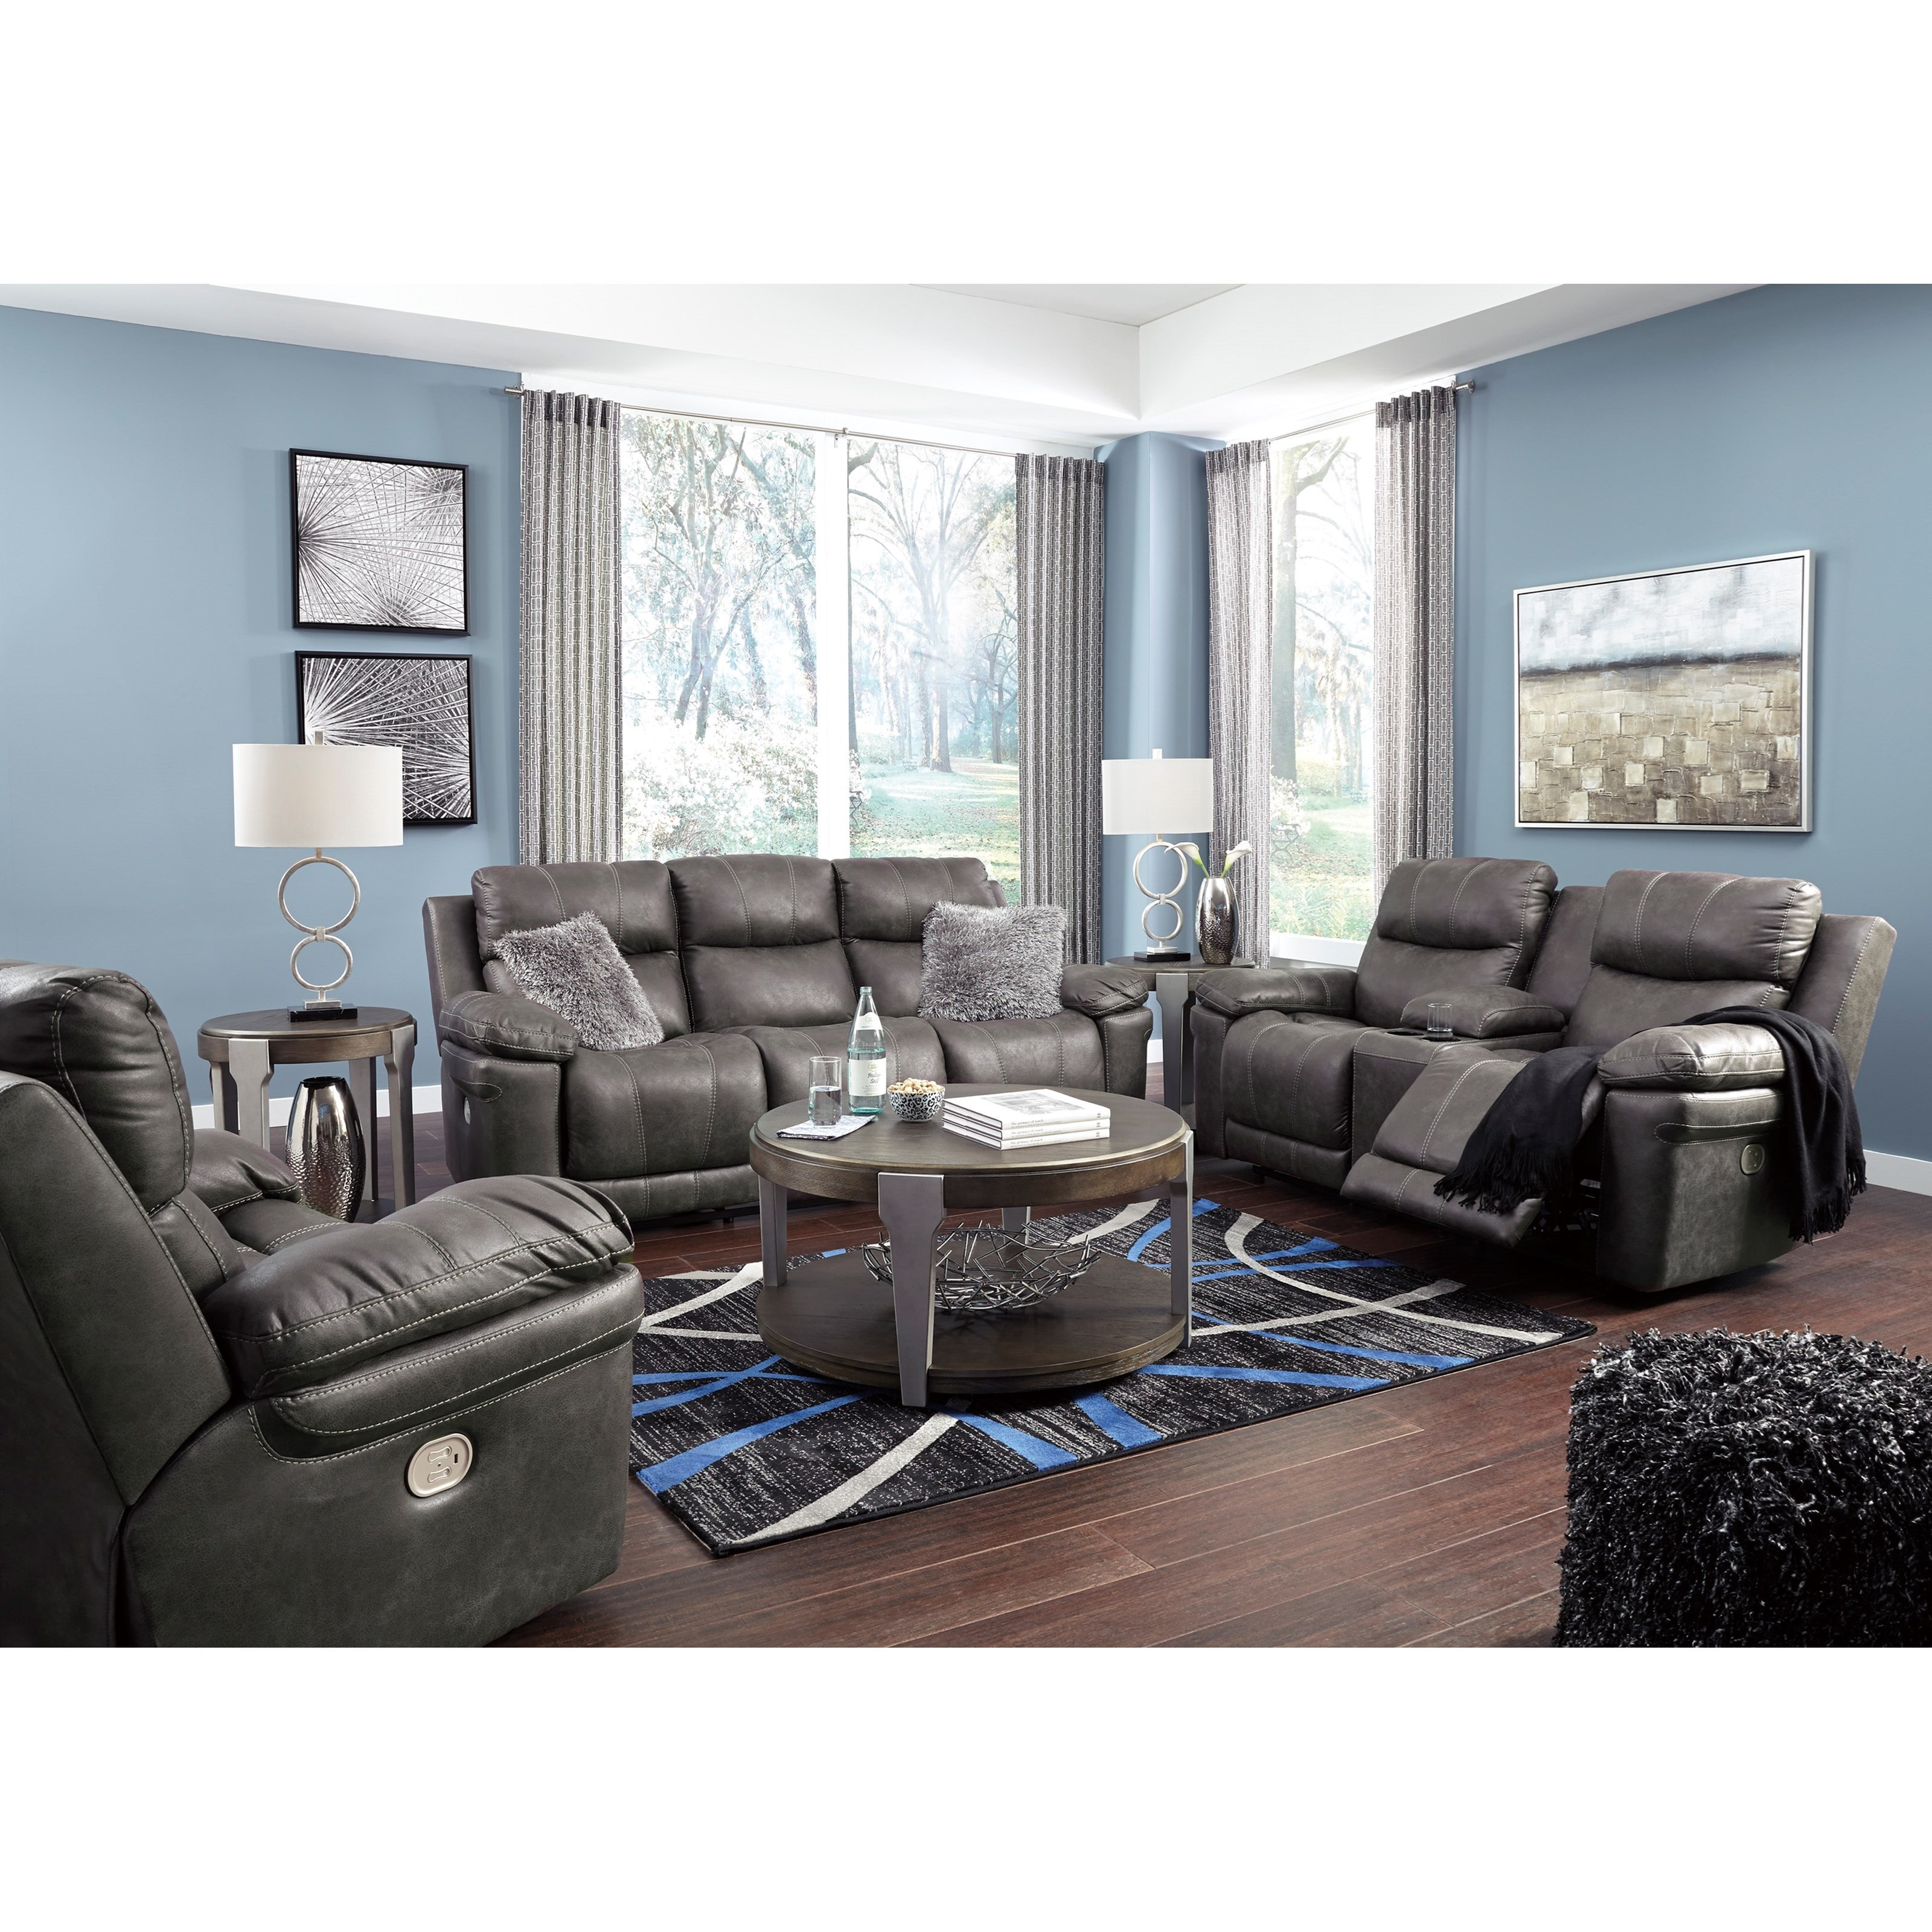 Erlangen Reclining Living Room Group by Signature Design by Ashley at Darvin Furniture